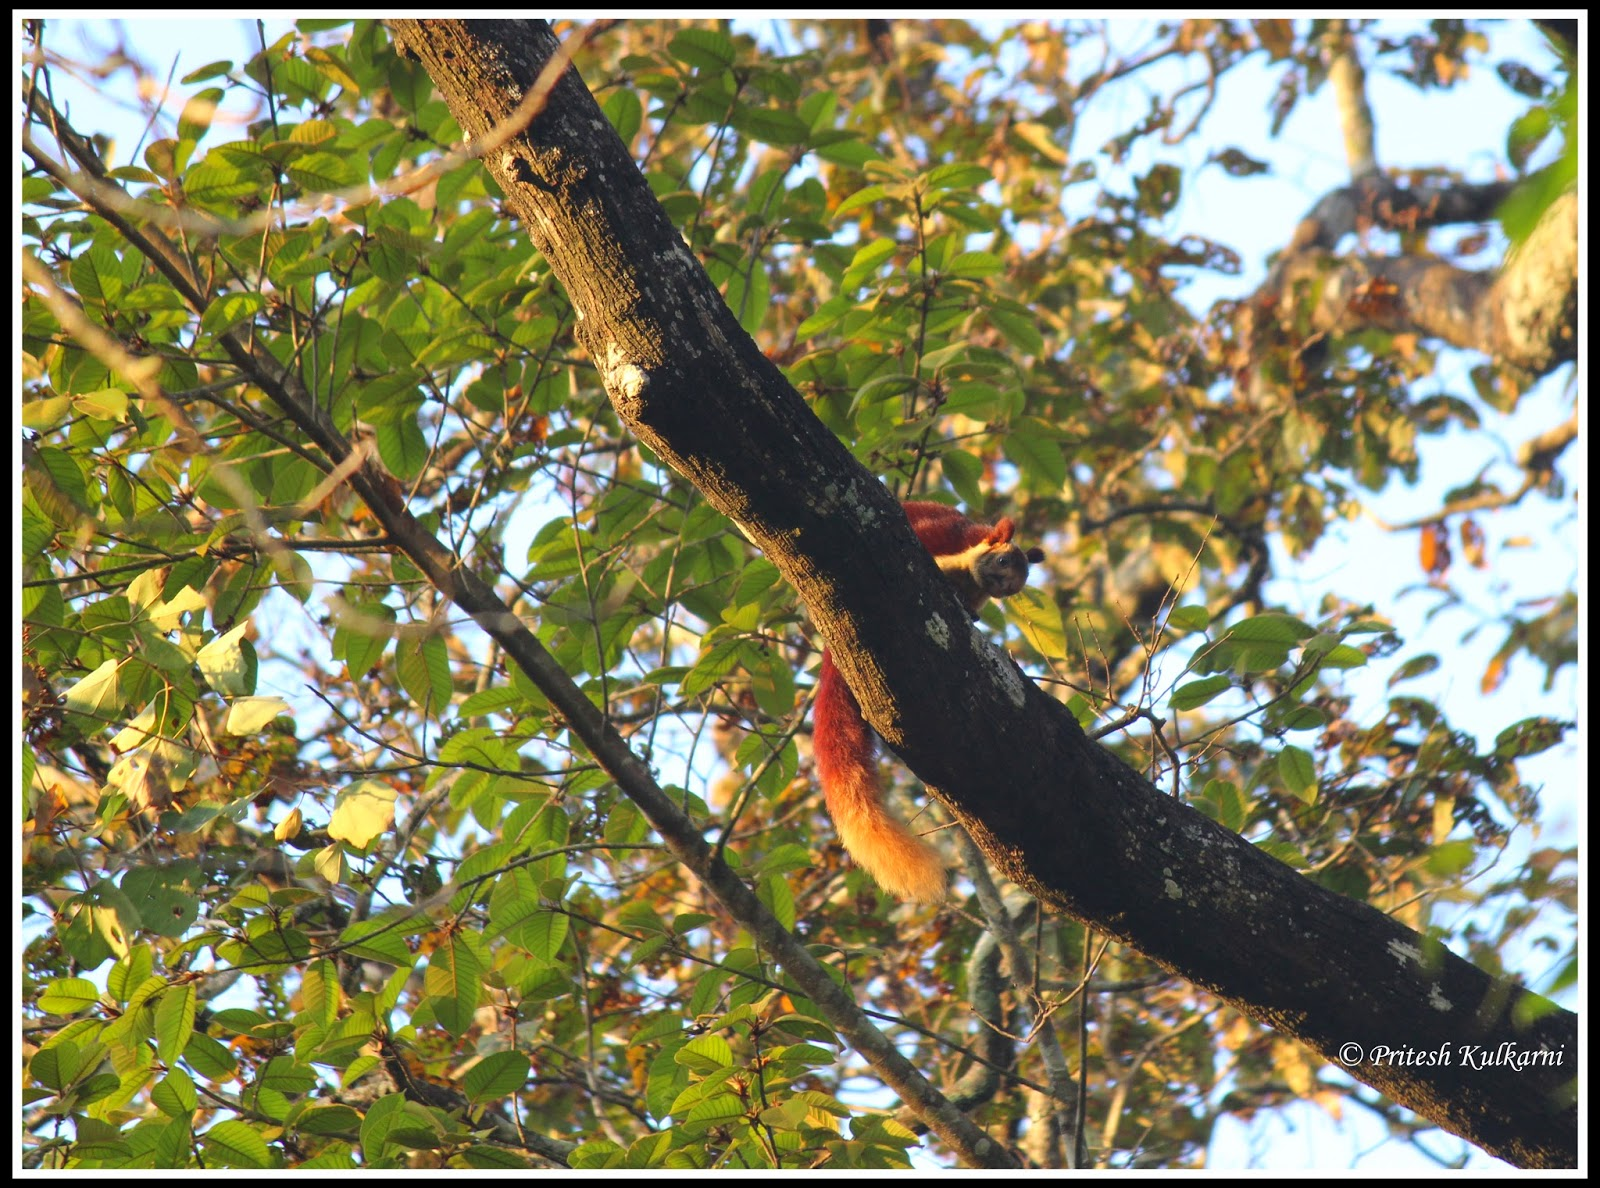 Malabar giant Squirrel at Bhadra